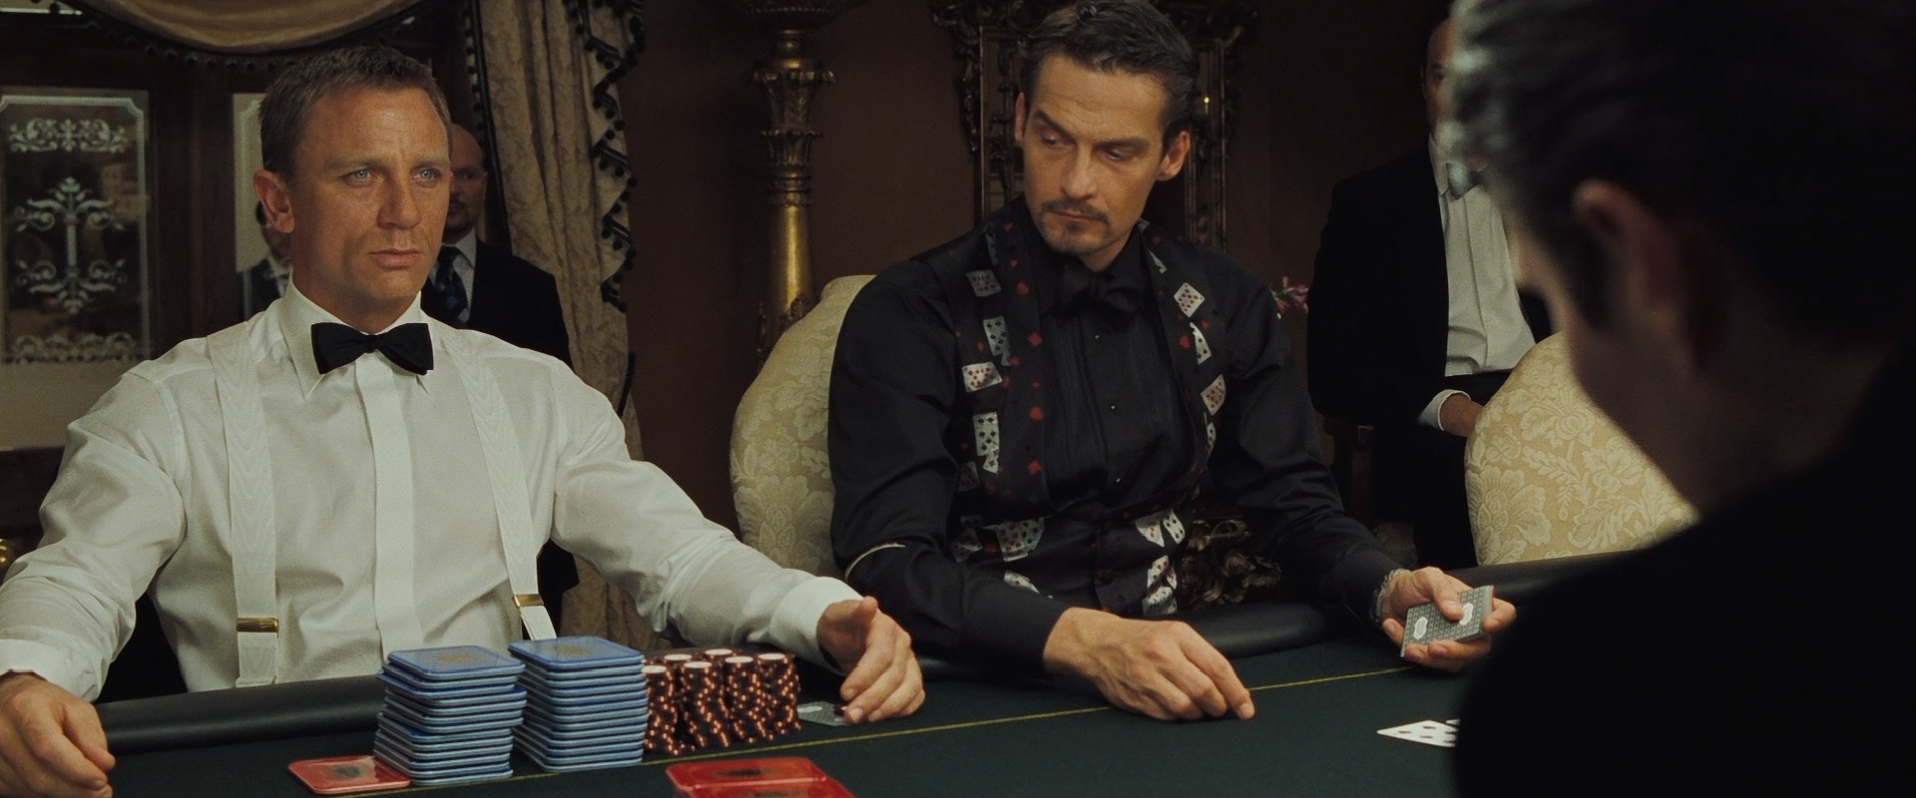 What type of poker is played in casino royale